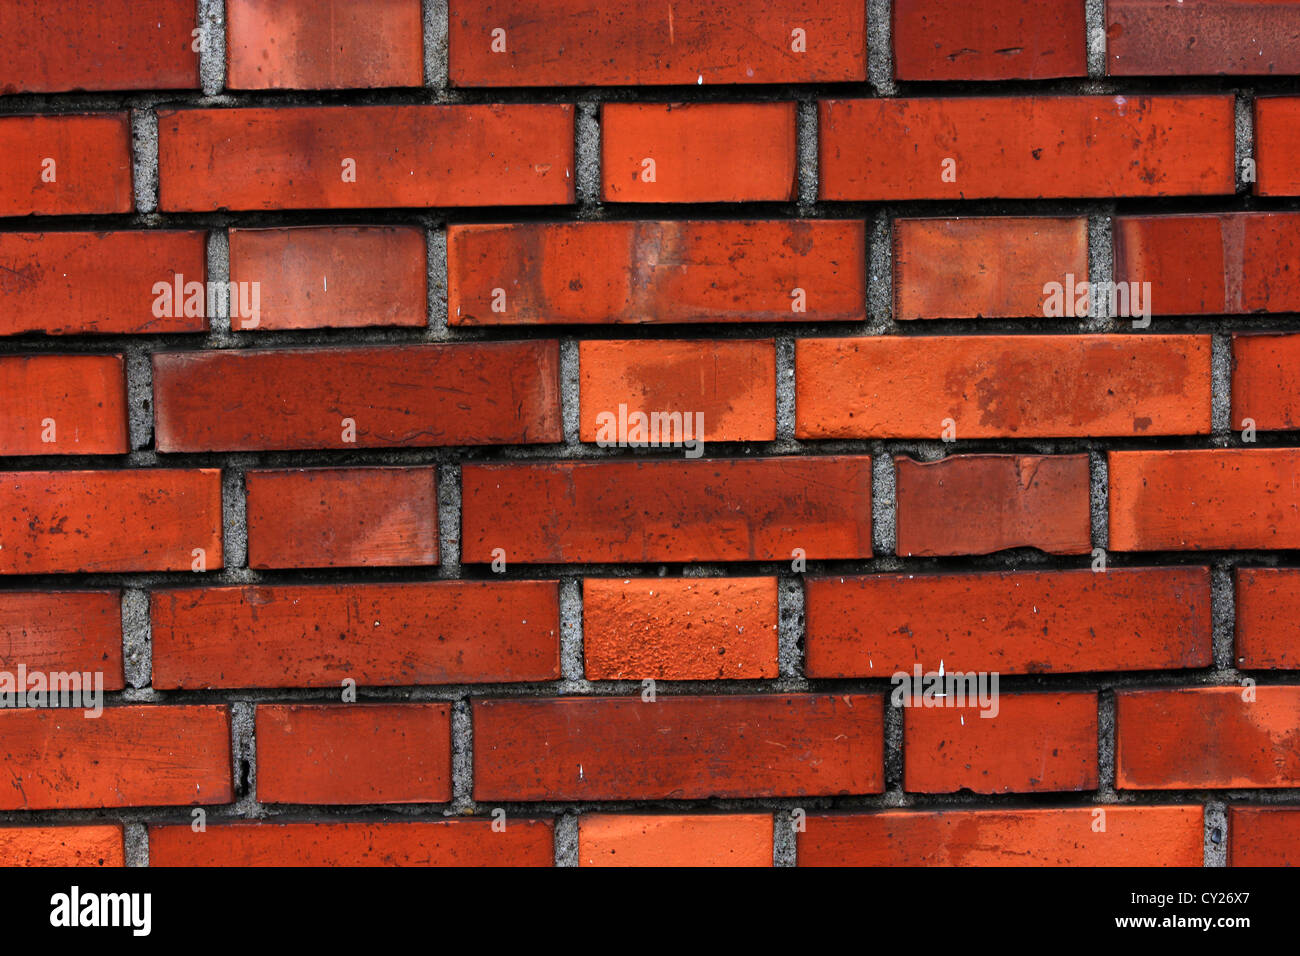 Bright Red Orange Brick Wall, Street, Wall, Bright Color's